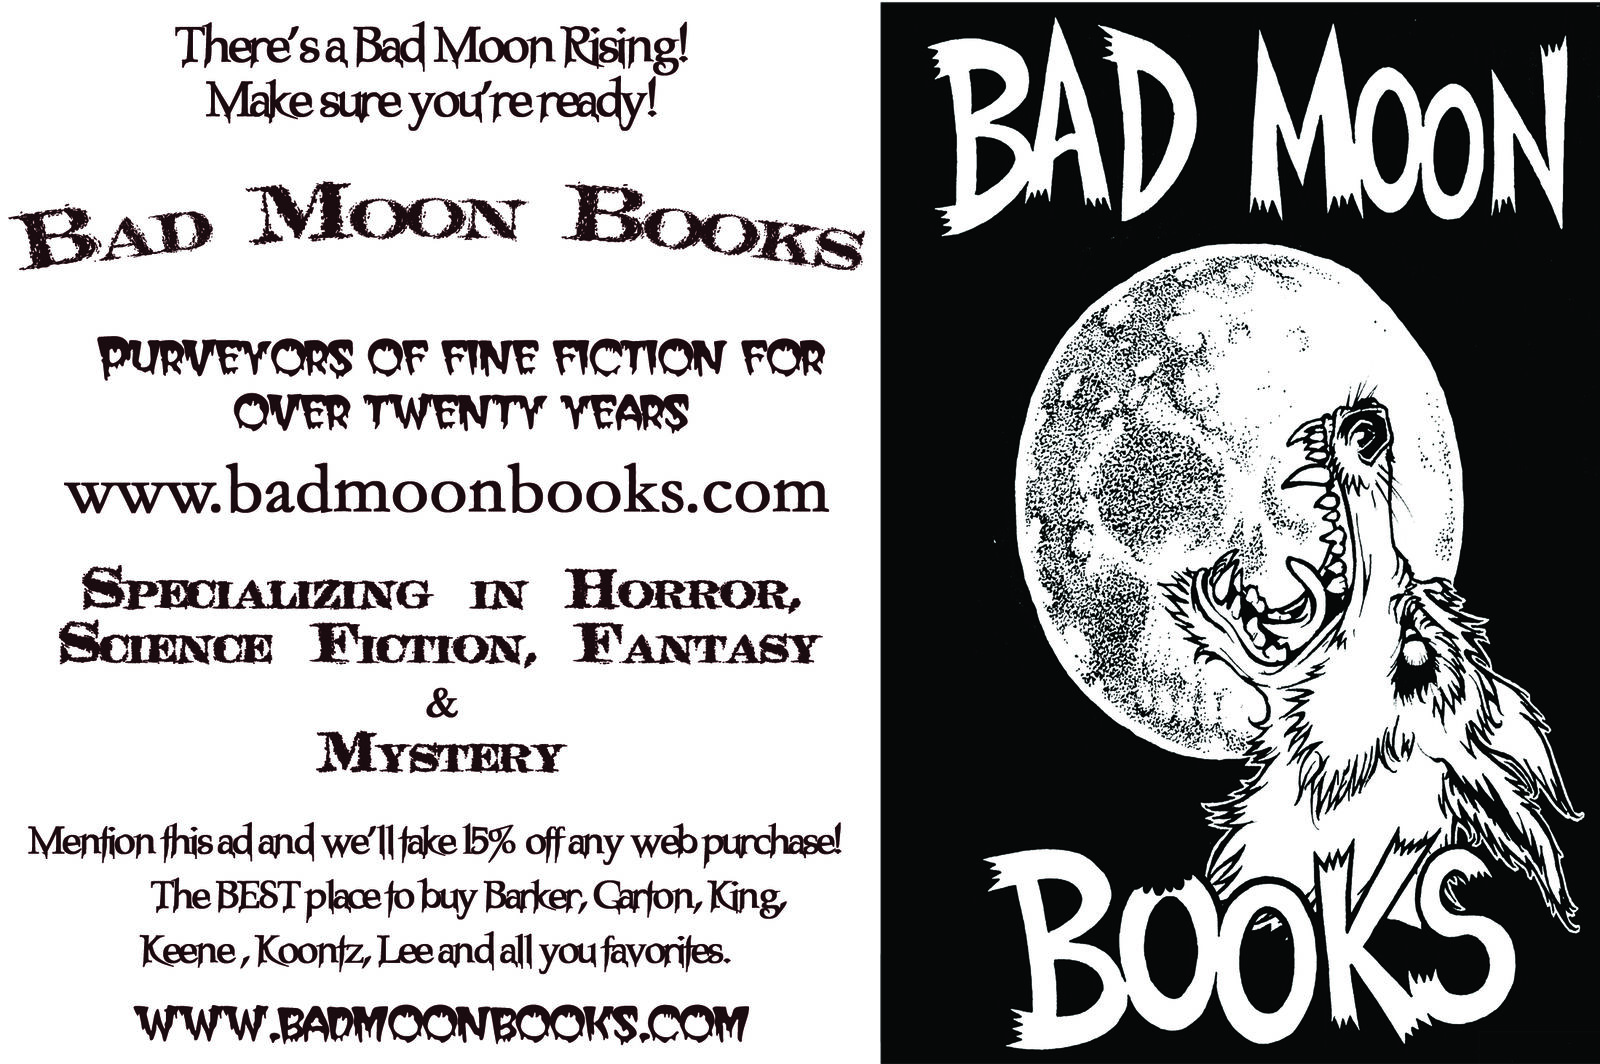 Bad Moon Books